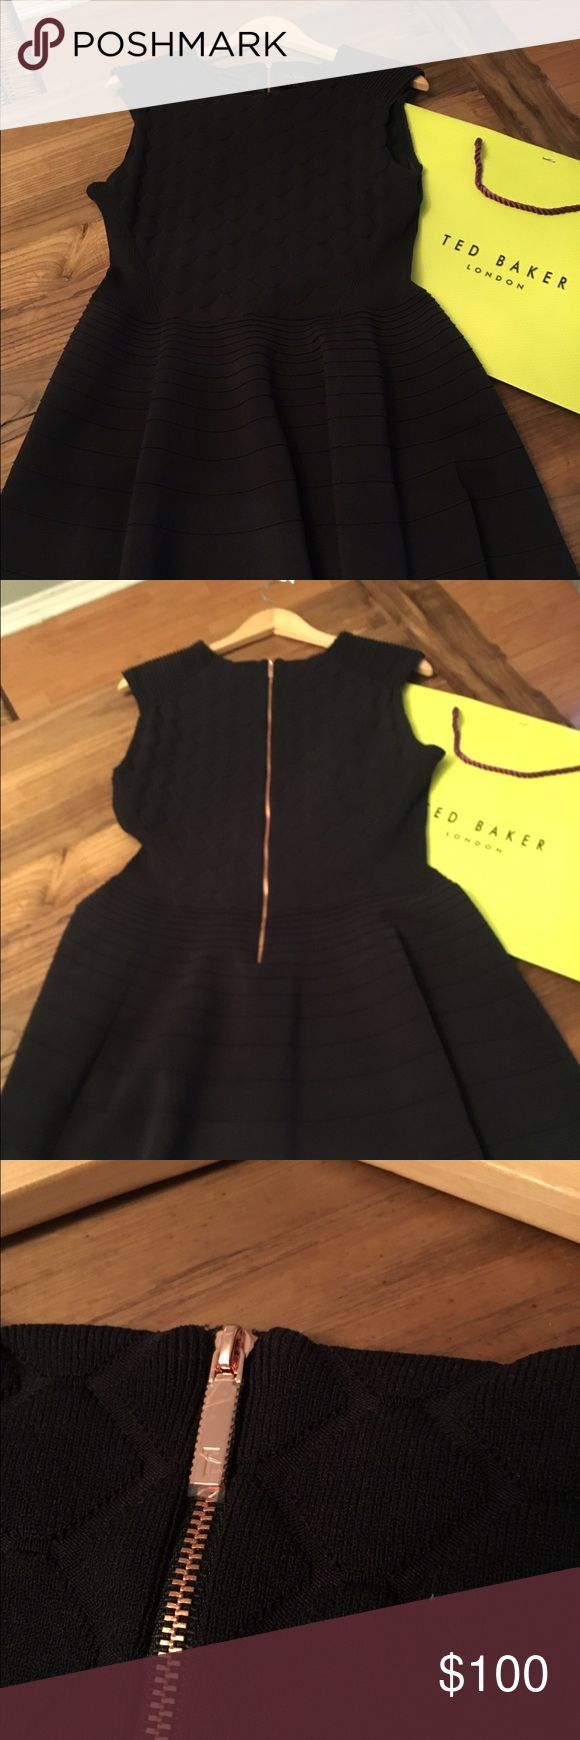 "Good Friday Sale🎉Black Ted Baker Dress💐🎉 Ted Baker Frinca Mix Knit Skater Dress. I just purchased Dress last month for and event and wore for a couple of hours! It's in excellent condition - like new. Plastic still on Zipper. This is a beautiful dress- very flattering textured knit dress and comfortable! It's a Size 5 which is equivalent to a size 12/14. I'm 5 2"" and dress hits my knees- Its 36 inches long. 17 in across in chest and 16 in waist. But it's knit so there is flexibility…"